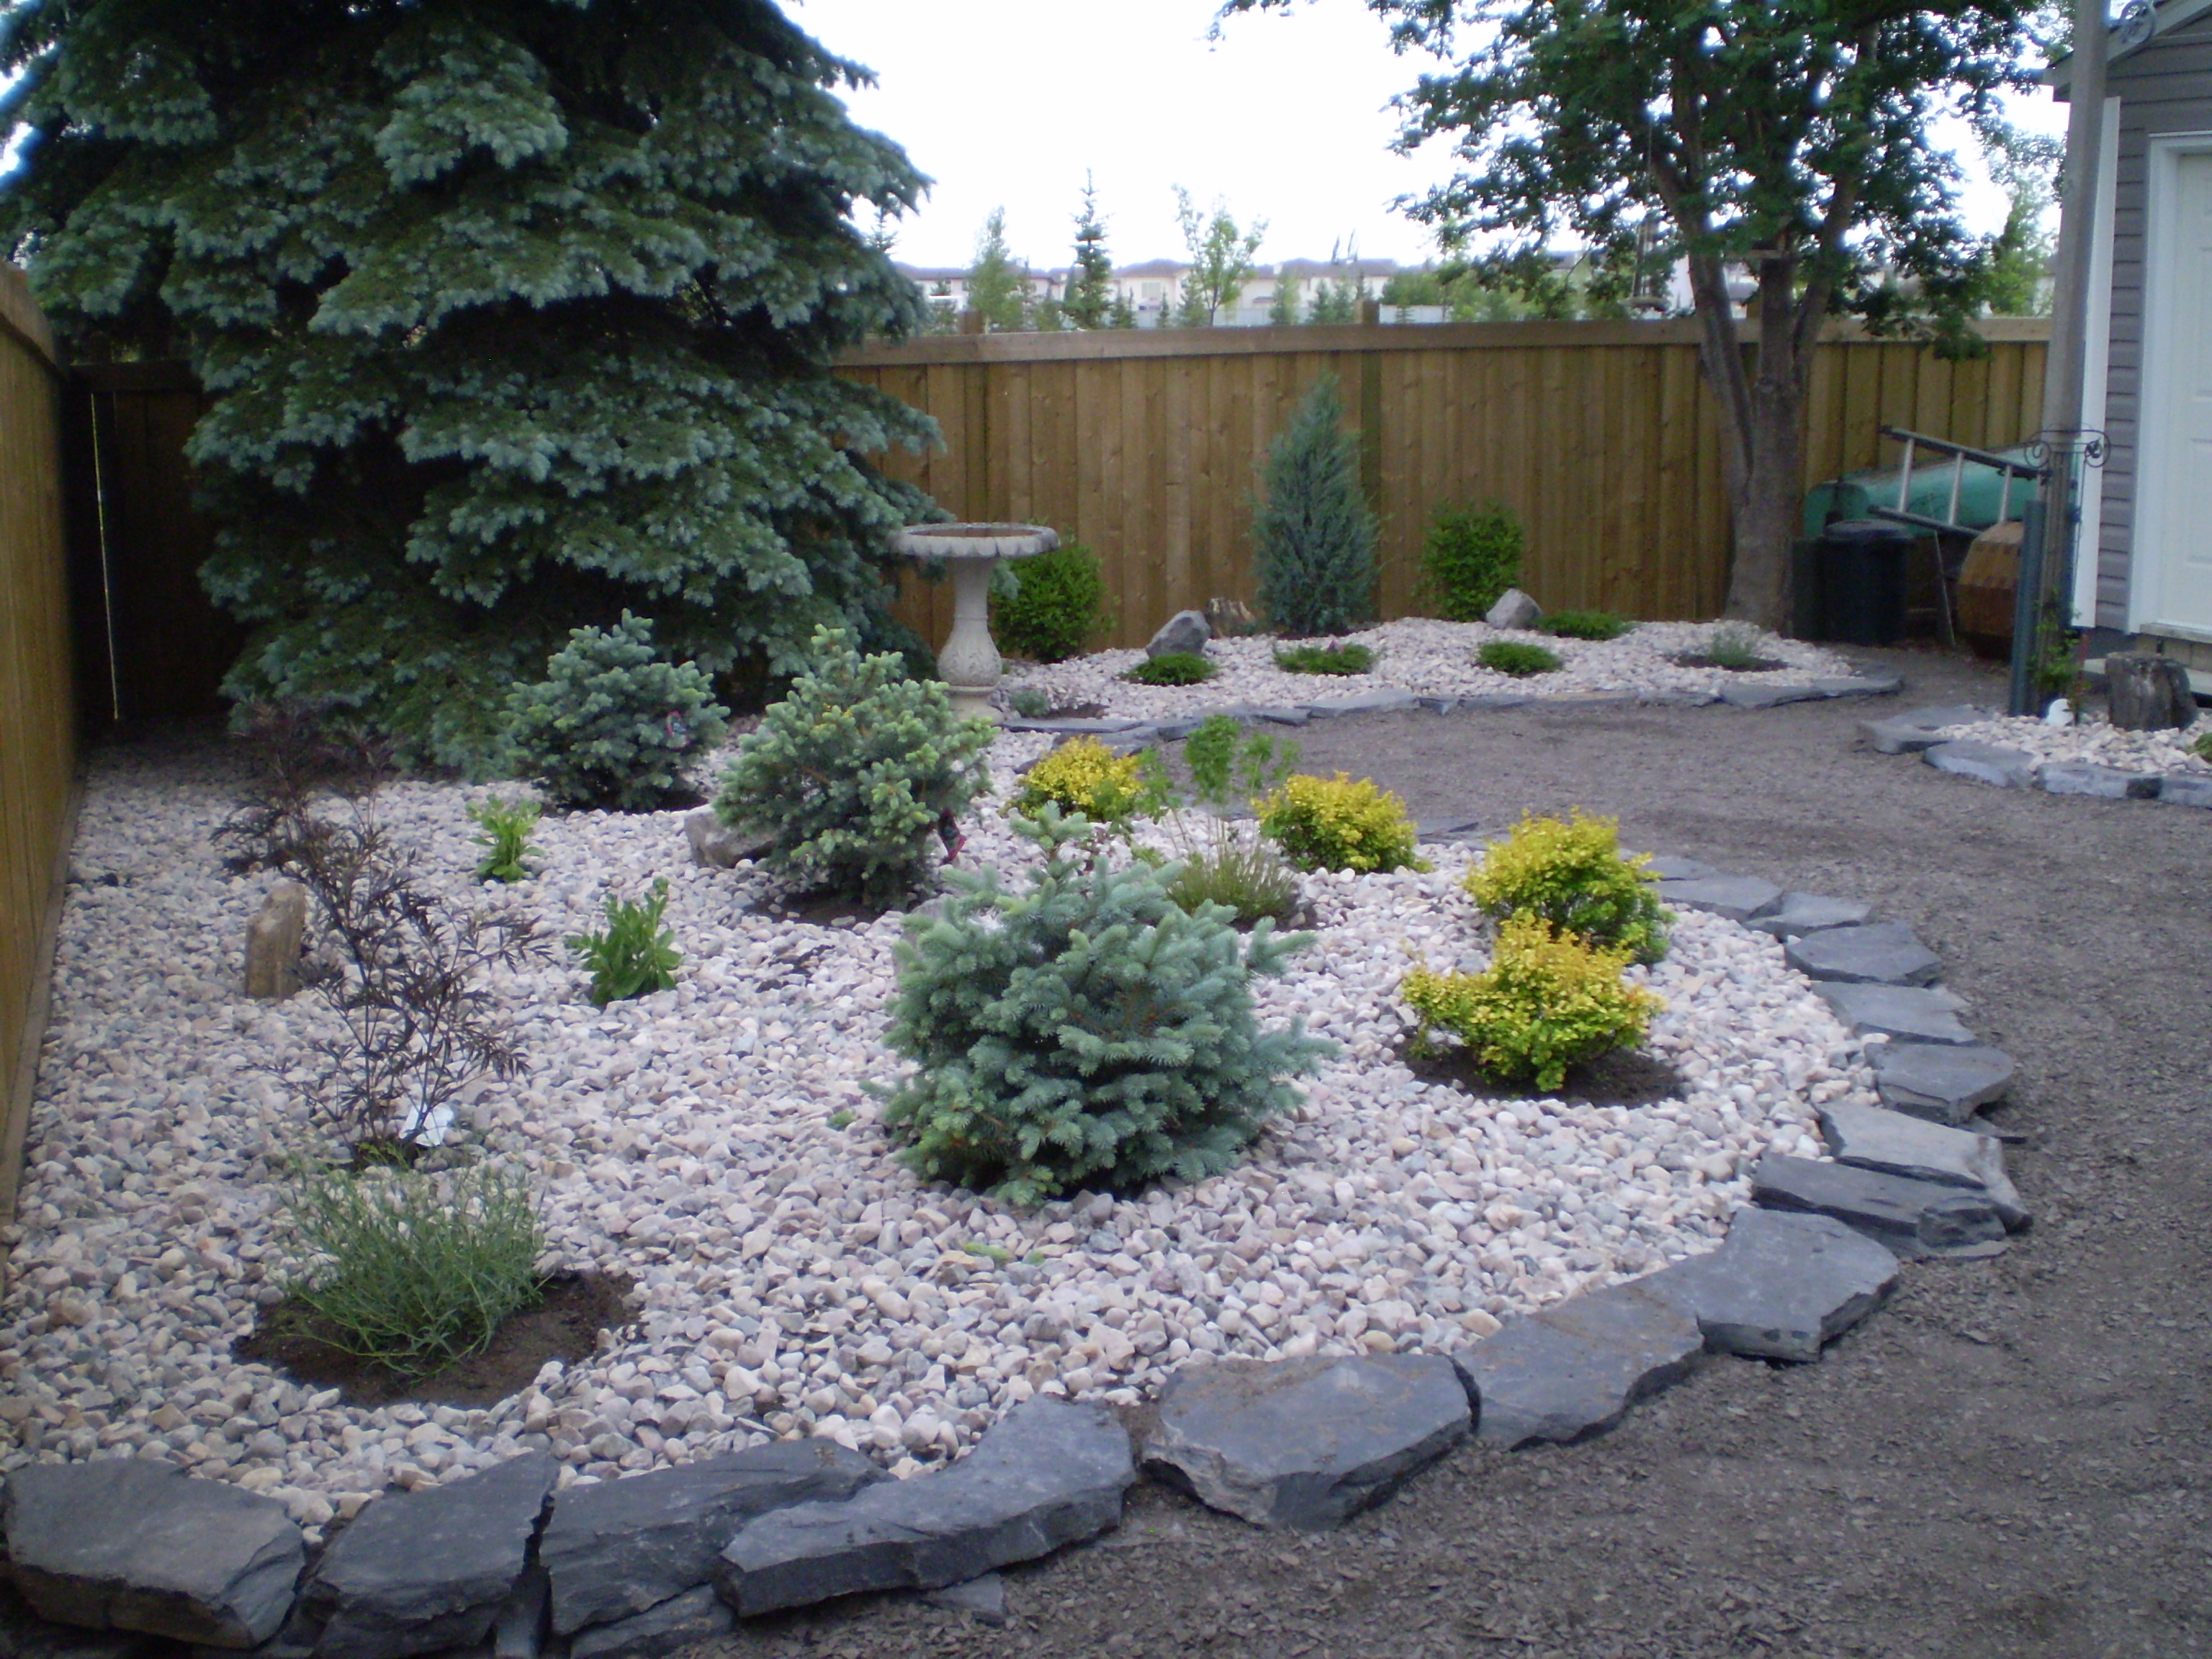 Pictures Low Maintenance Landscaping Ideas PDF on economical backyard ideas, simple backyard ideas, eco friendly backyard ideas, easy low maintenance landscaping ideas, safe backyard ideas, affordable backyard ideas, no mow backyard design, low maintenance front yard landscaping ideas, dog-friendly backyard landscaping ideas,